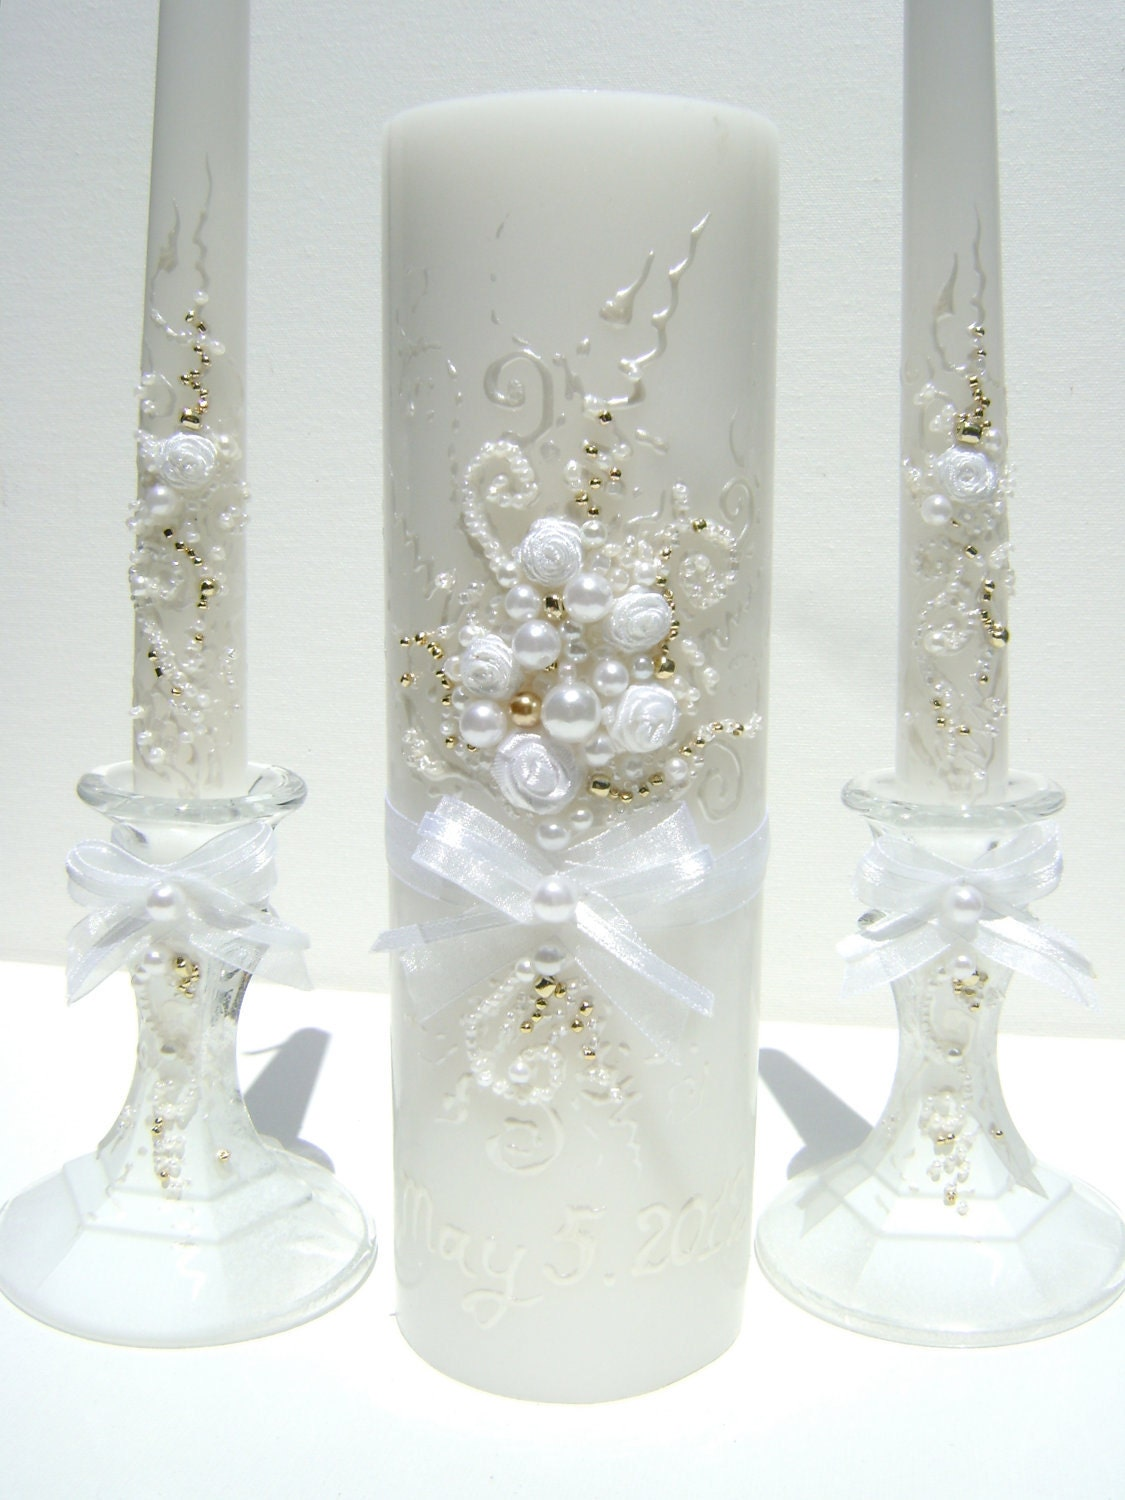 Wedding Unity Candle Set Hand Decorated With An Original